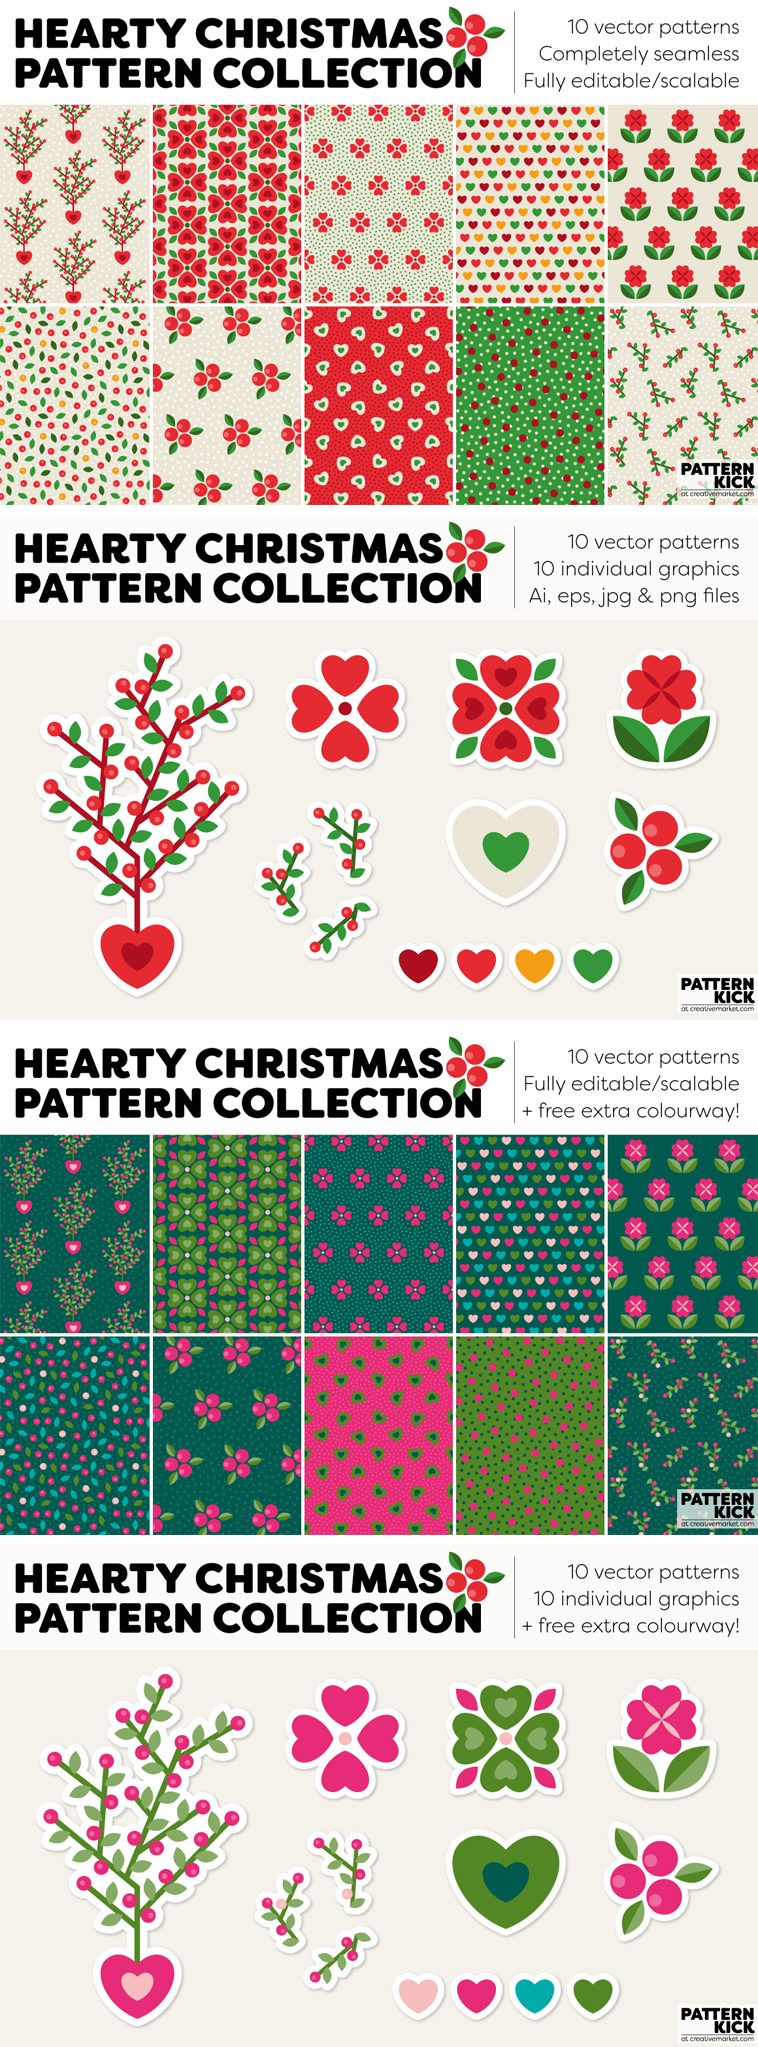 Christmas Prints and Patterns at Pattern Kick - Creative Market [4] | Pitter Pattern